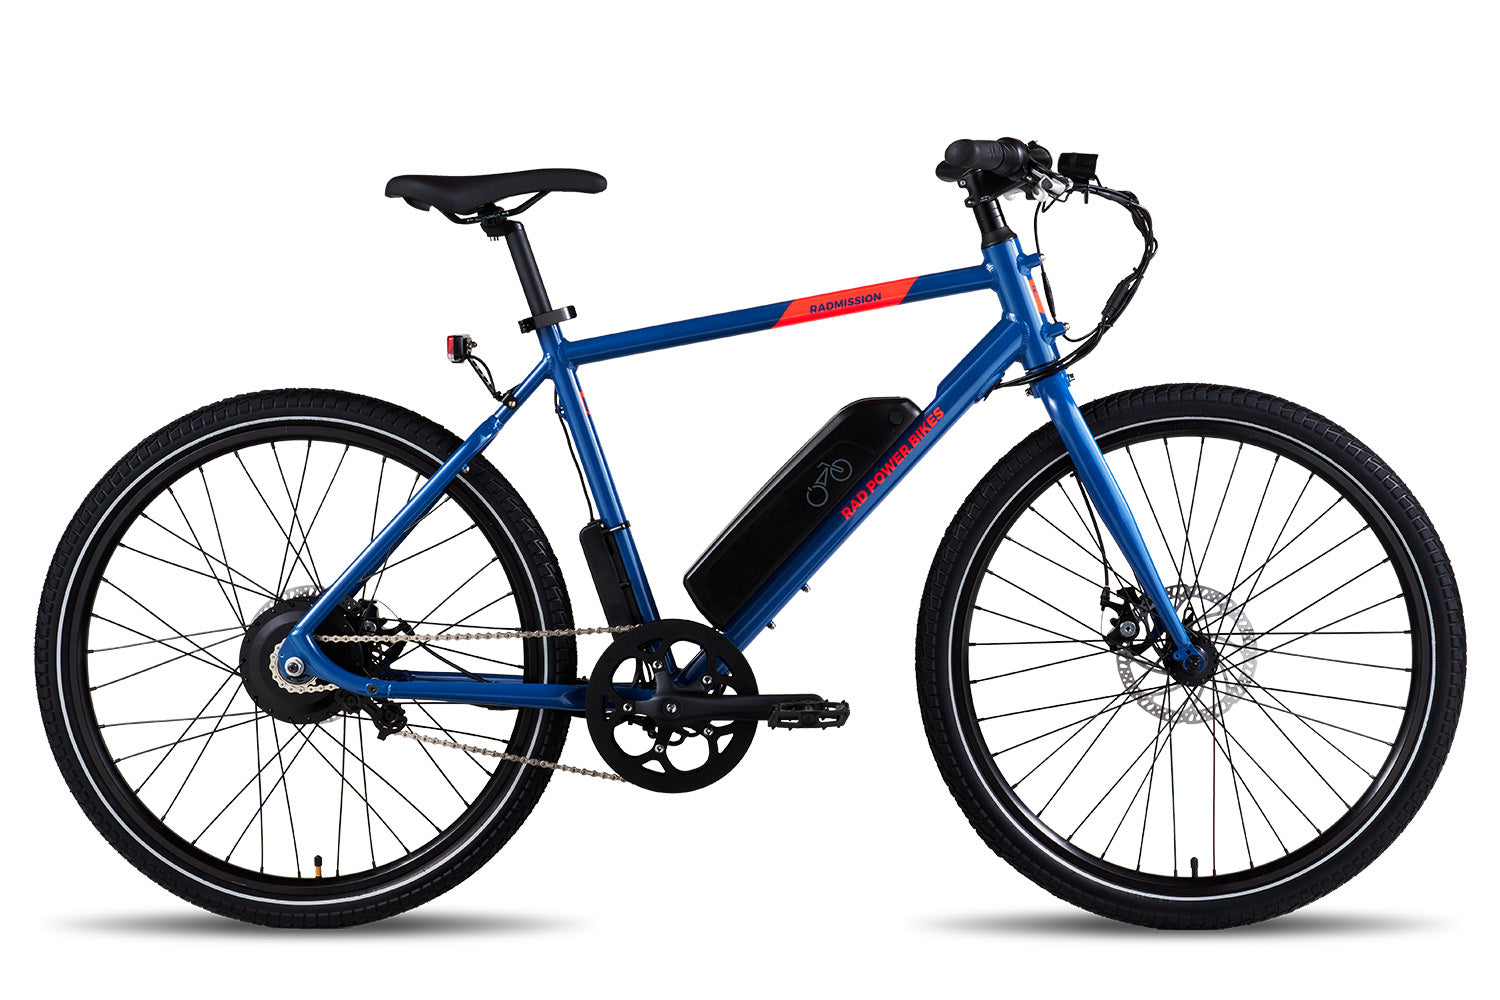 A blue RadMission electric metro bike against a white background.